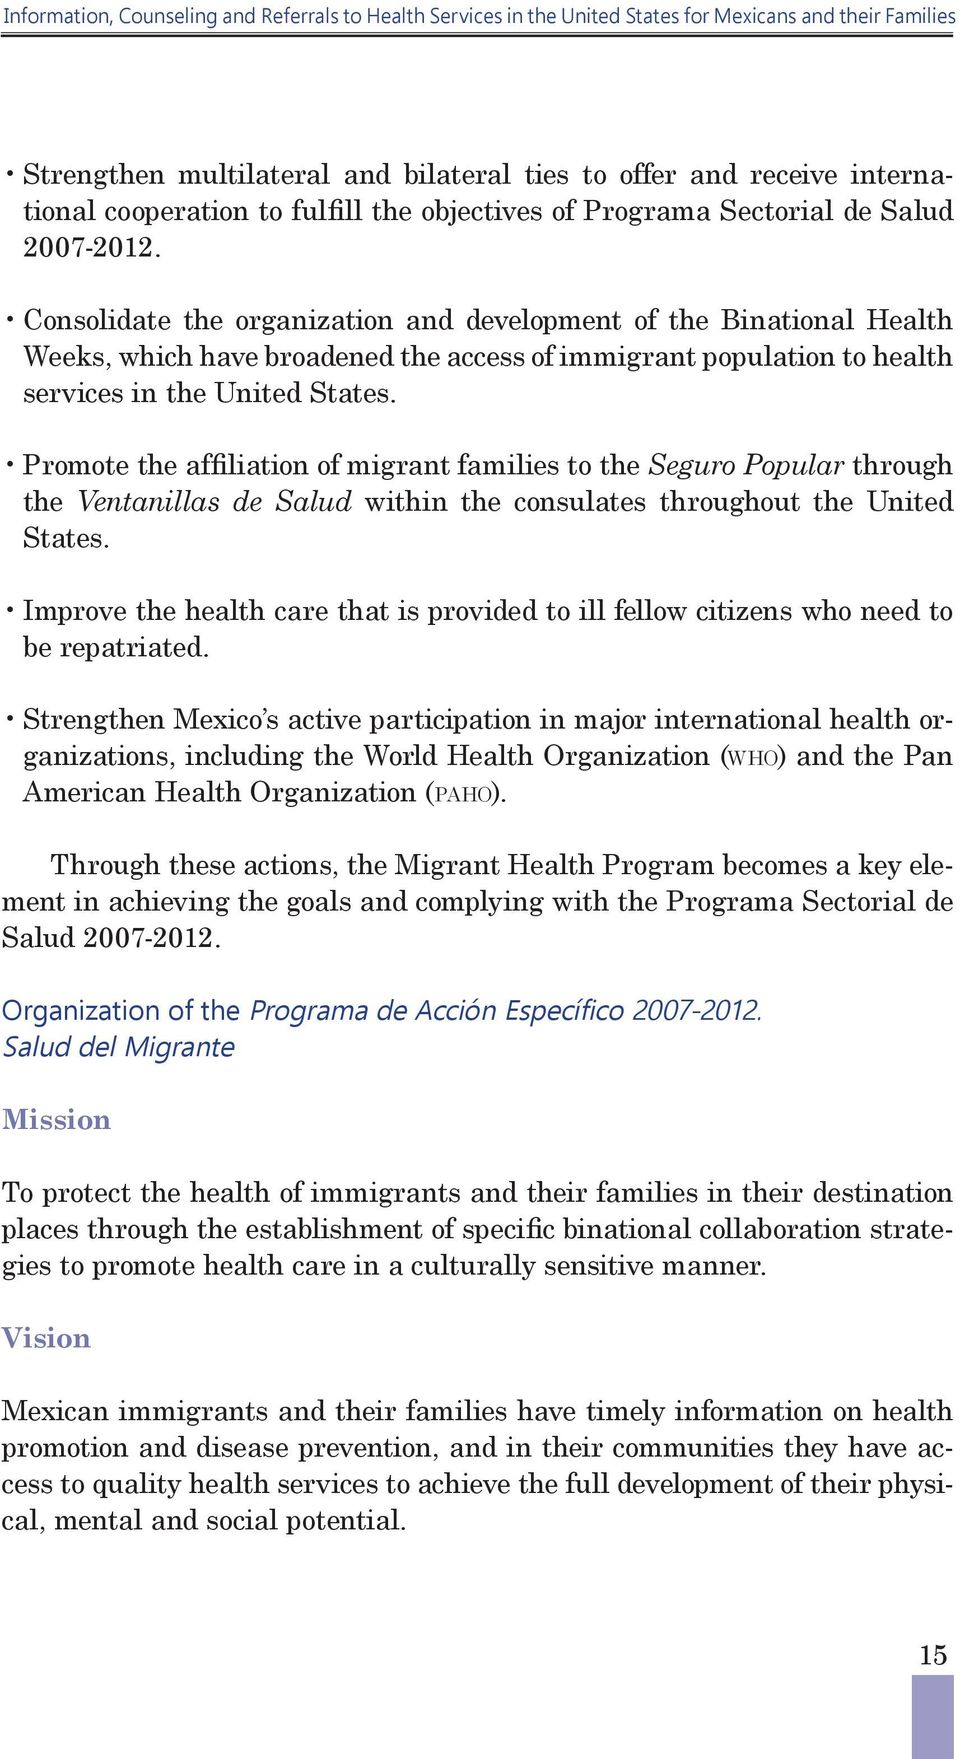 Consolidate the organization and development of the Binational Health Weeks, which have broadened the access of immigrant population to health services in the United States.